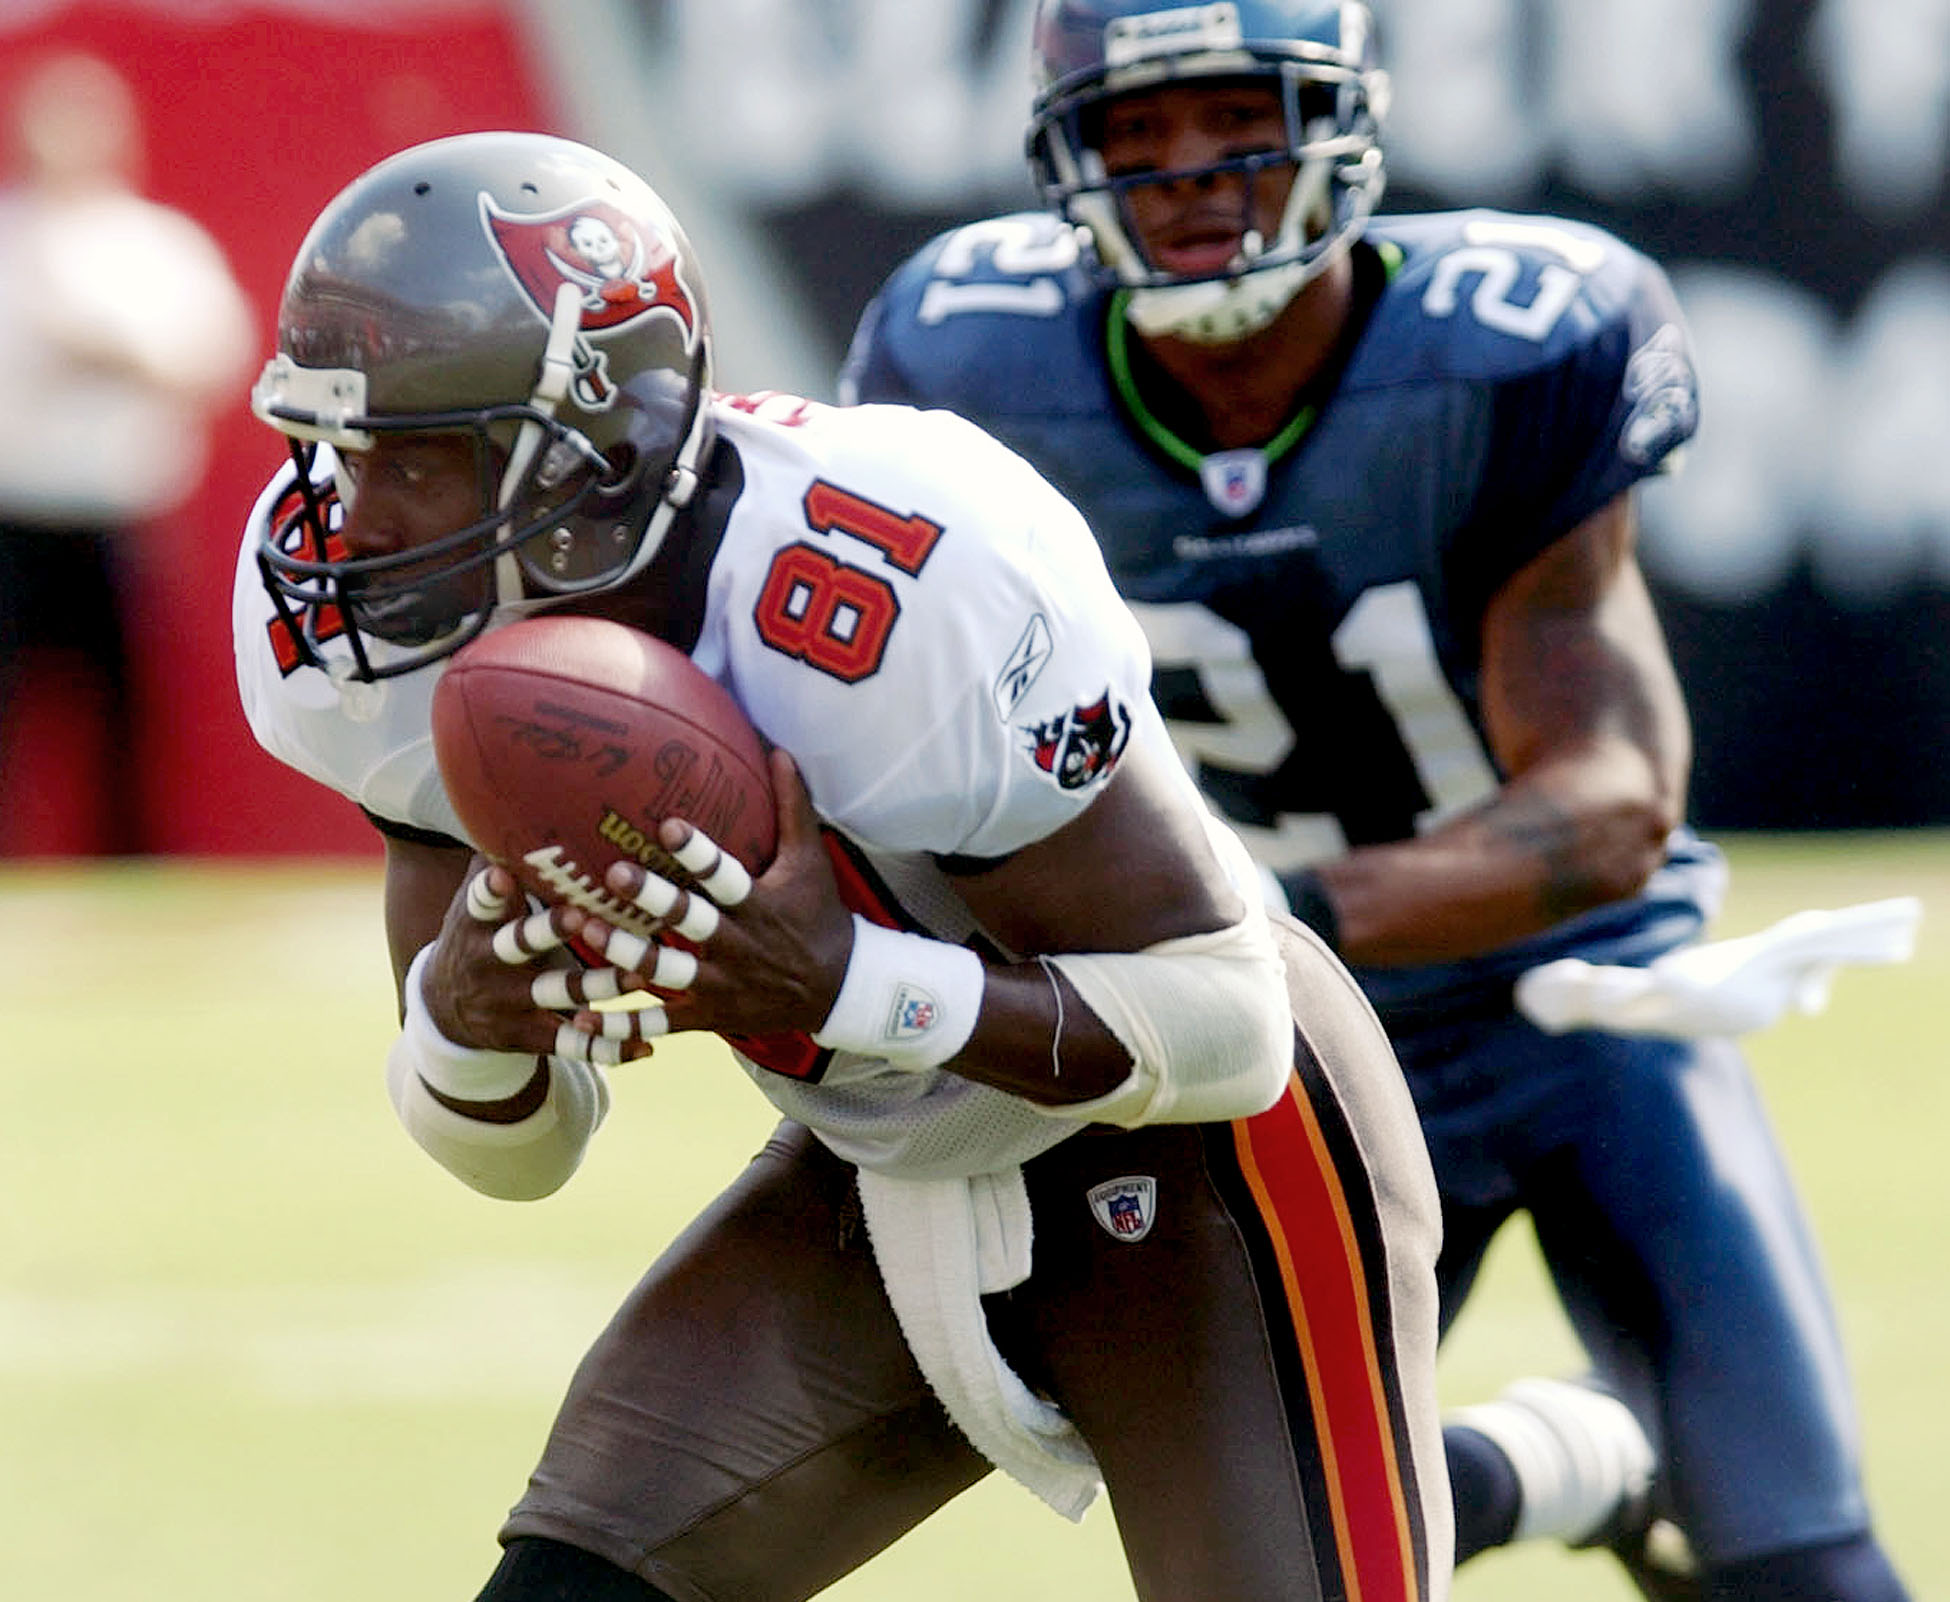 FILE - In this Sept. 19, 2004, file photo, Tampa Bay Buccaneers wide receiver Tim Brown (81) pulls in a pass in front of Seattle Seahawks cornerback Ken Lucas during their game in Tampa, Fla. Brown's versatility and longevity made him a strong candidate f